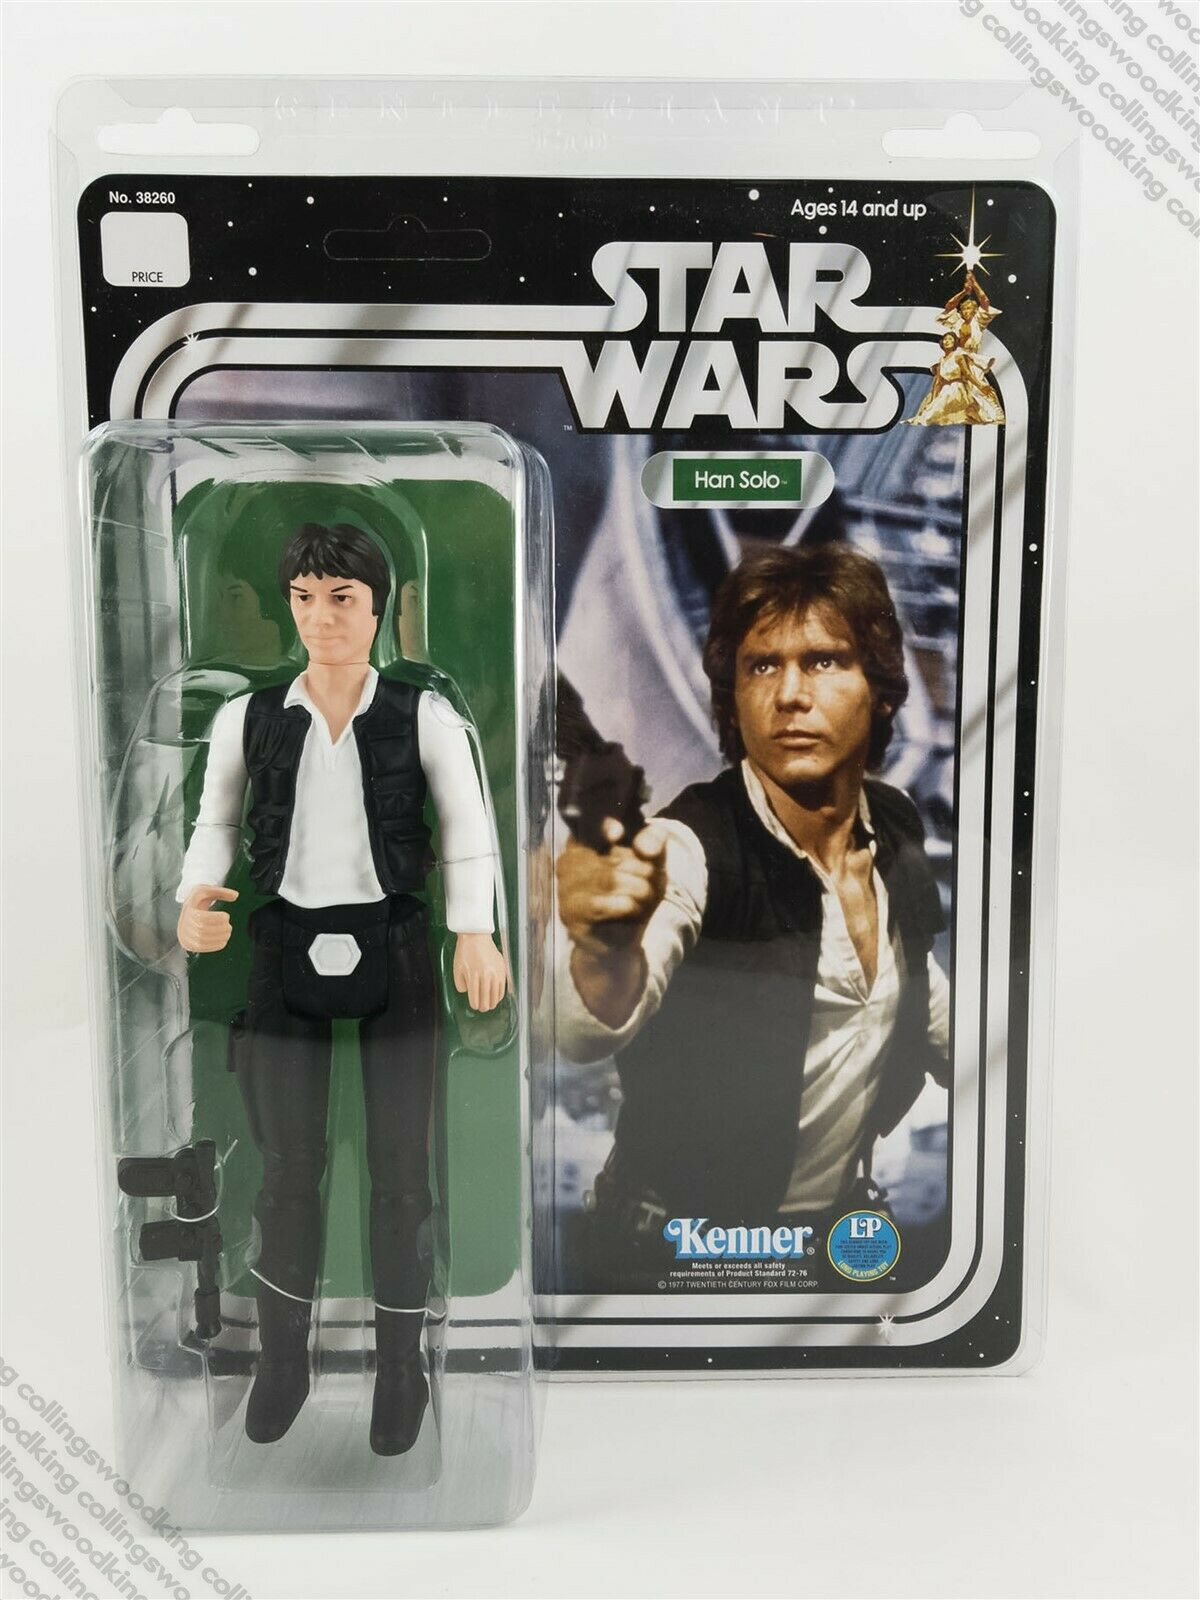 Gentle Giant Jumbo Vintage estrella guerras Han Solo azione  cifra MIP - Kenner 1978  distribuzione globale